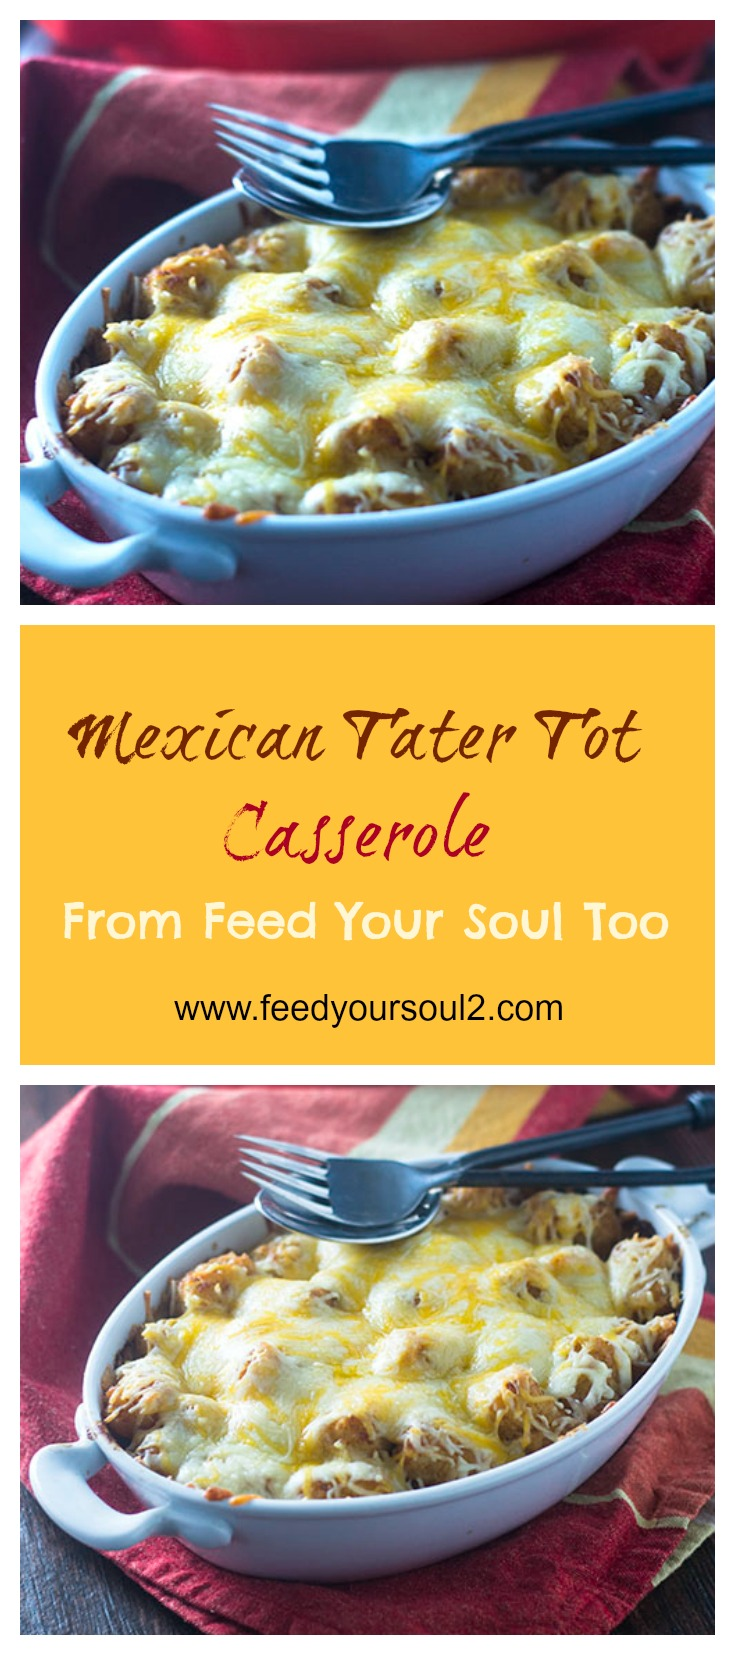 Mexican Tater Tot Casserole #Dinner #comfortfood #Mexicanrecipe #casserole | feedyoursoul2.com